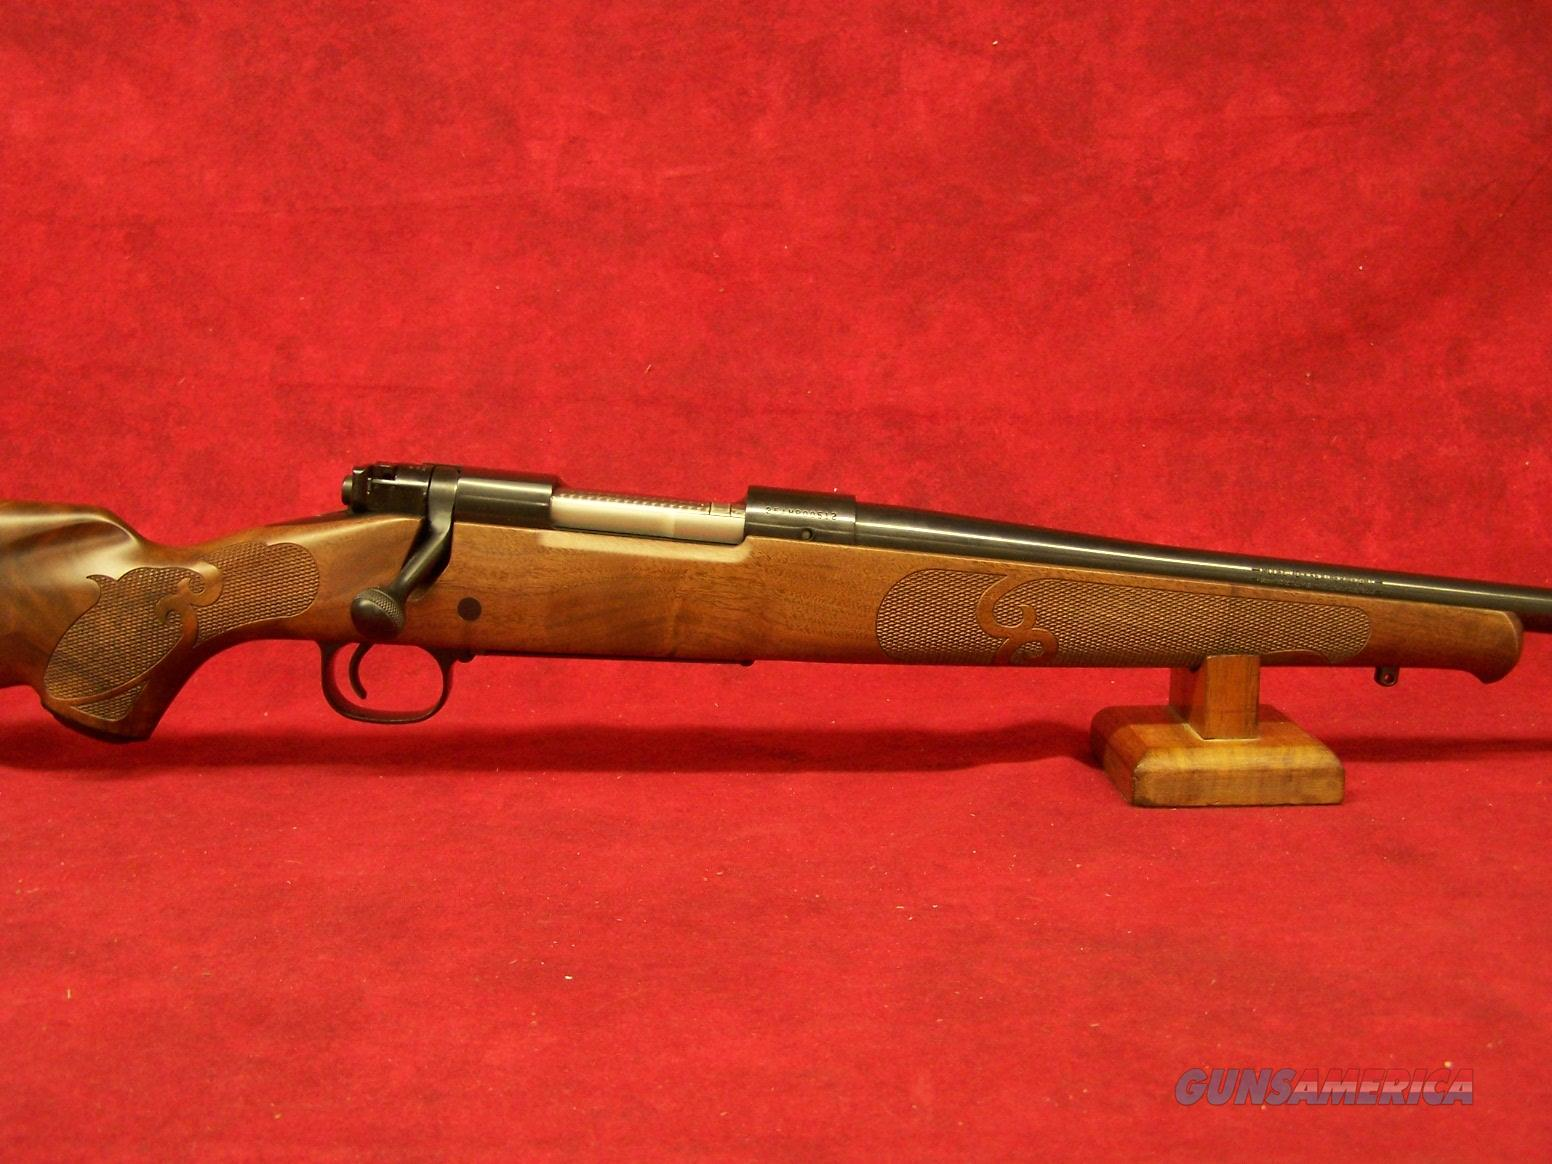 "Winchester Model 70 Featherweight DLX Limited 2008 Edition 325wsm 24"" Barrel Beautiful Wood (535102277)**RARE CALIBER**  Guns > Rifles > Winchester Rifles - Modern Bolt/Auto/Single > Model 70 > Post-64"